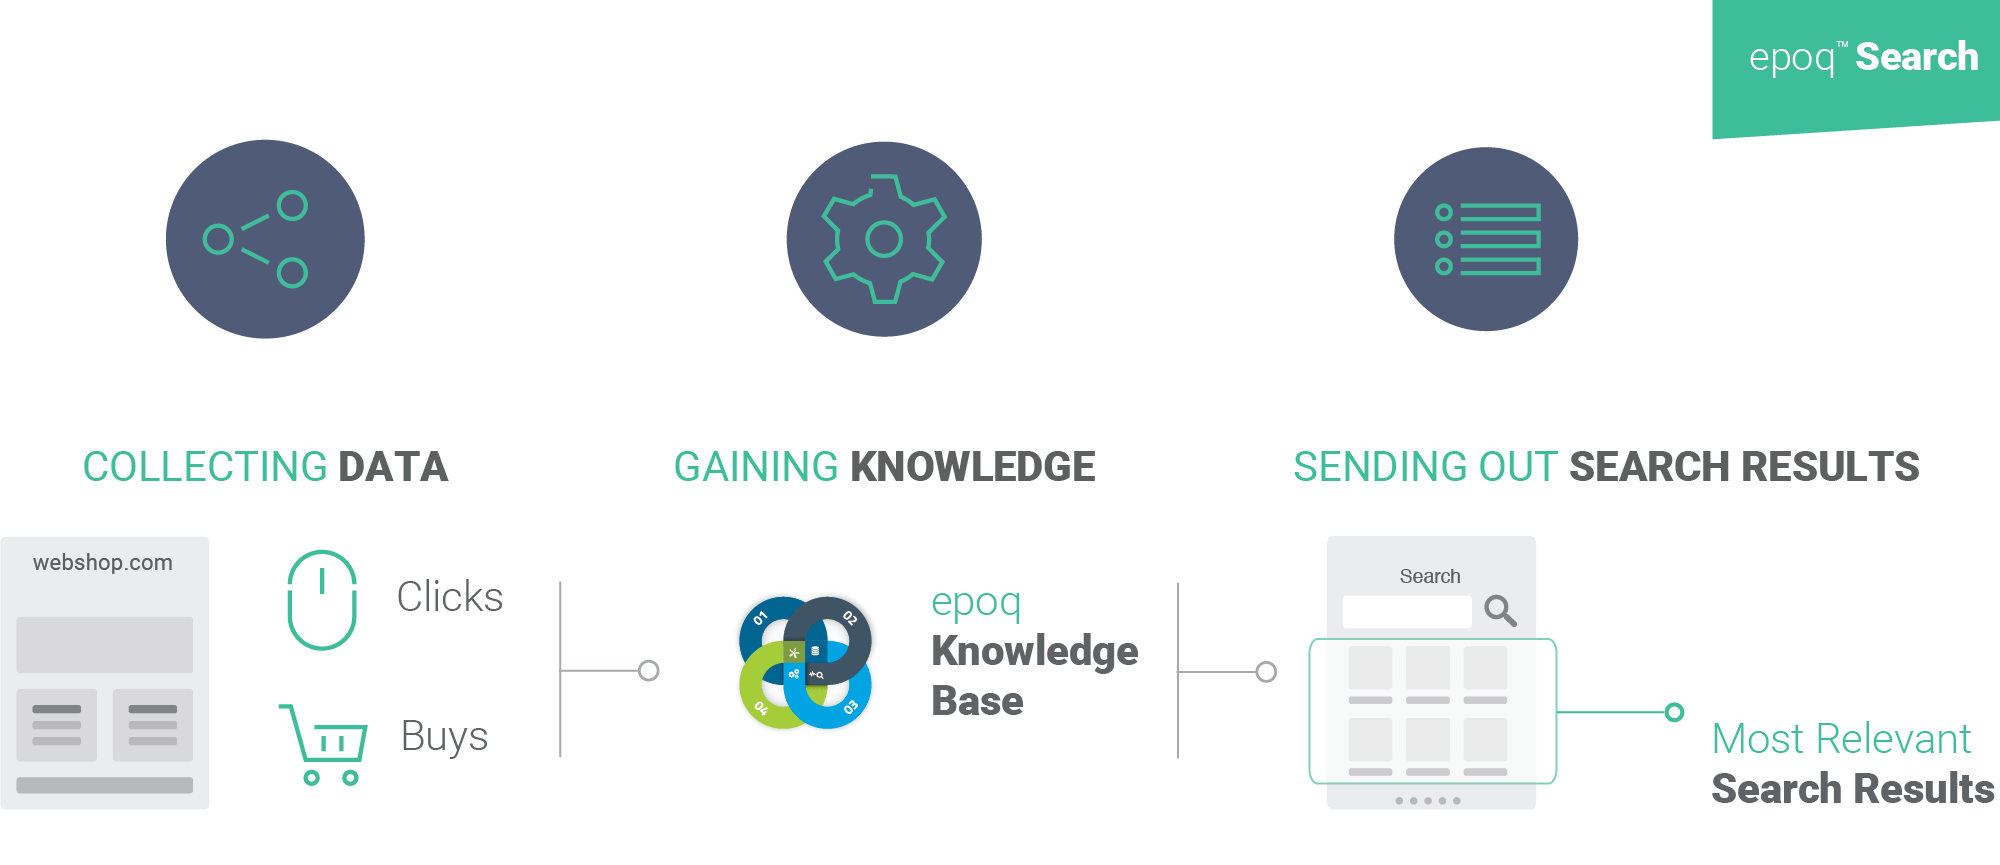 Intelligent Search of epoq provides relevant search results which are based on the click and buy behavior of all customers.